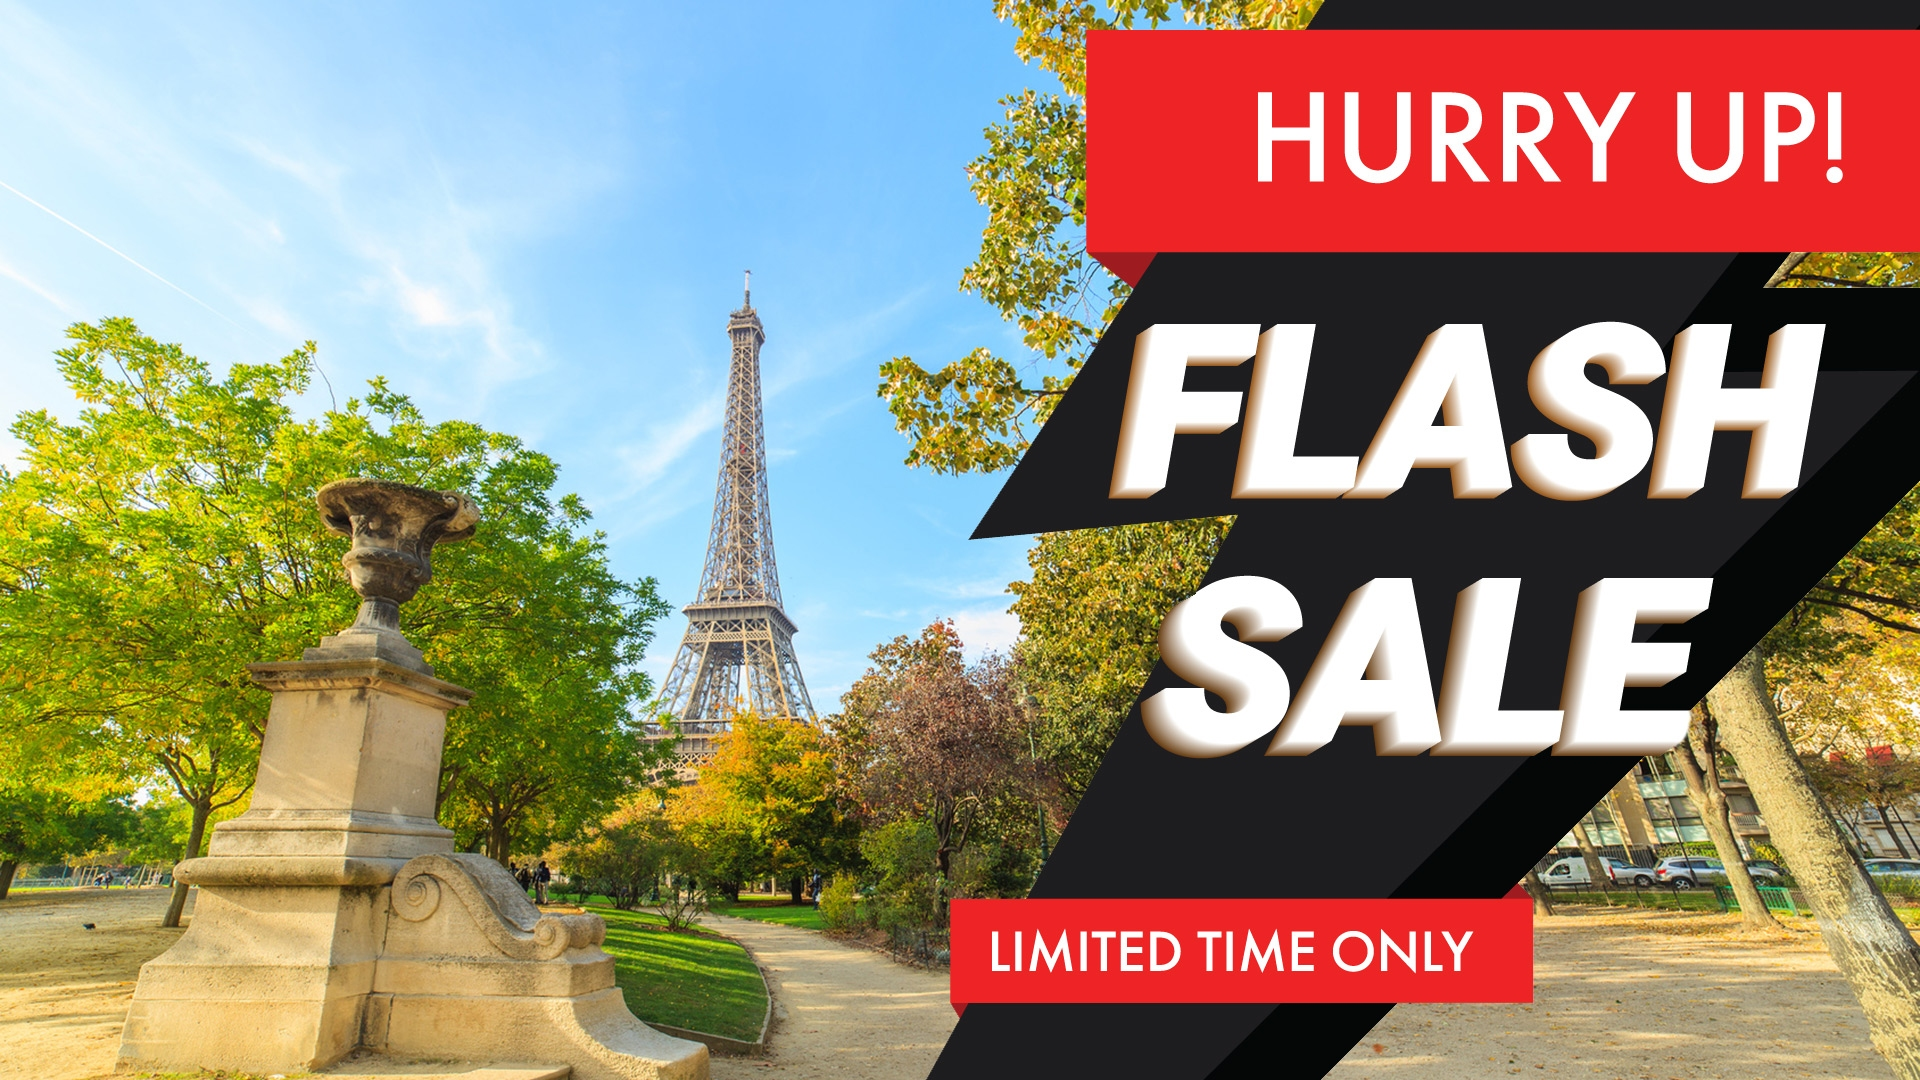 Save Up To 40% With Our Last-Minute Flash Sale